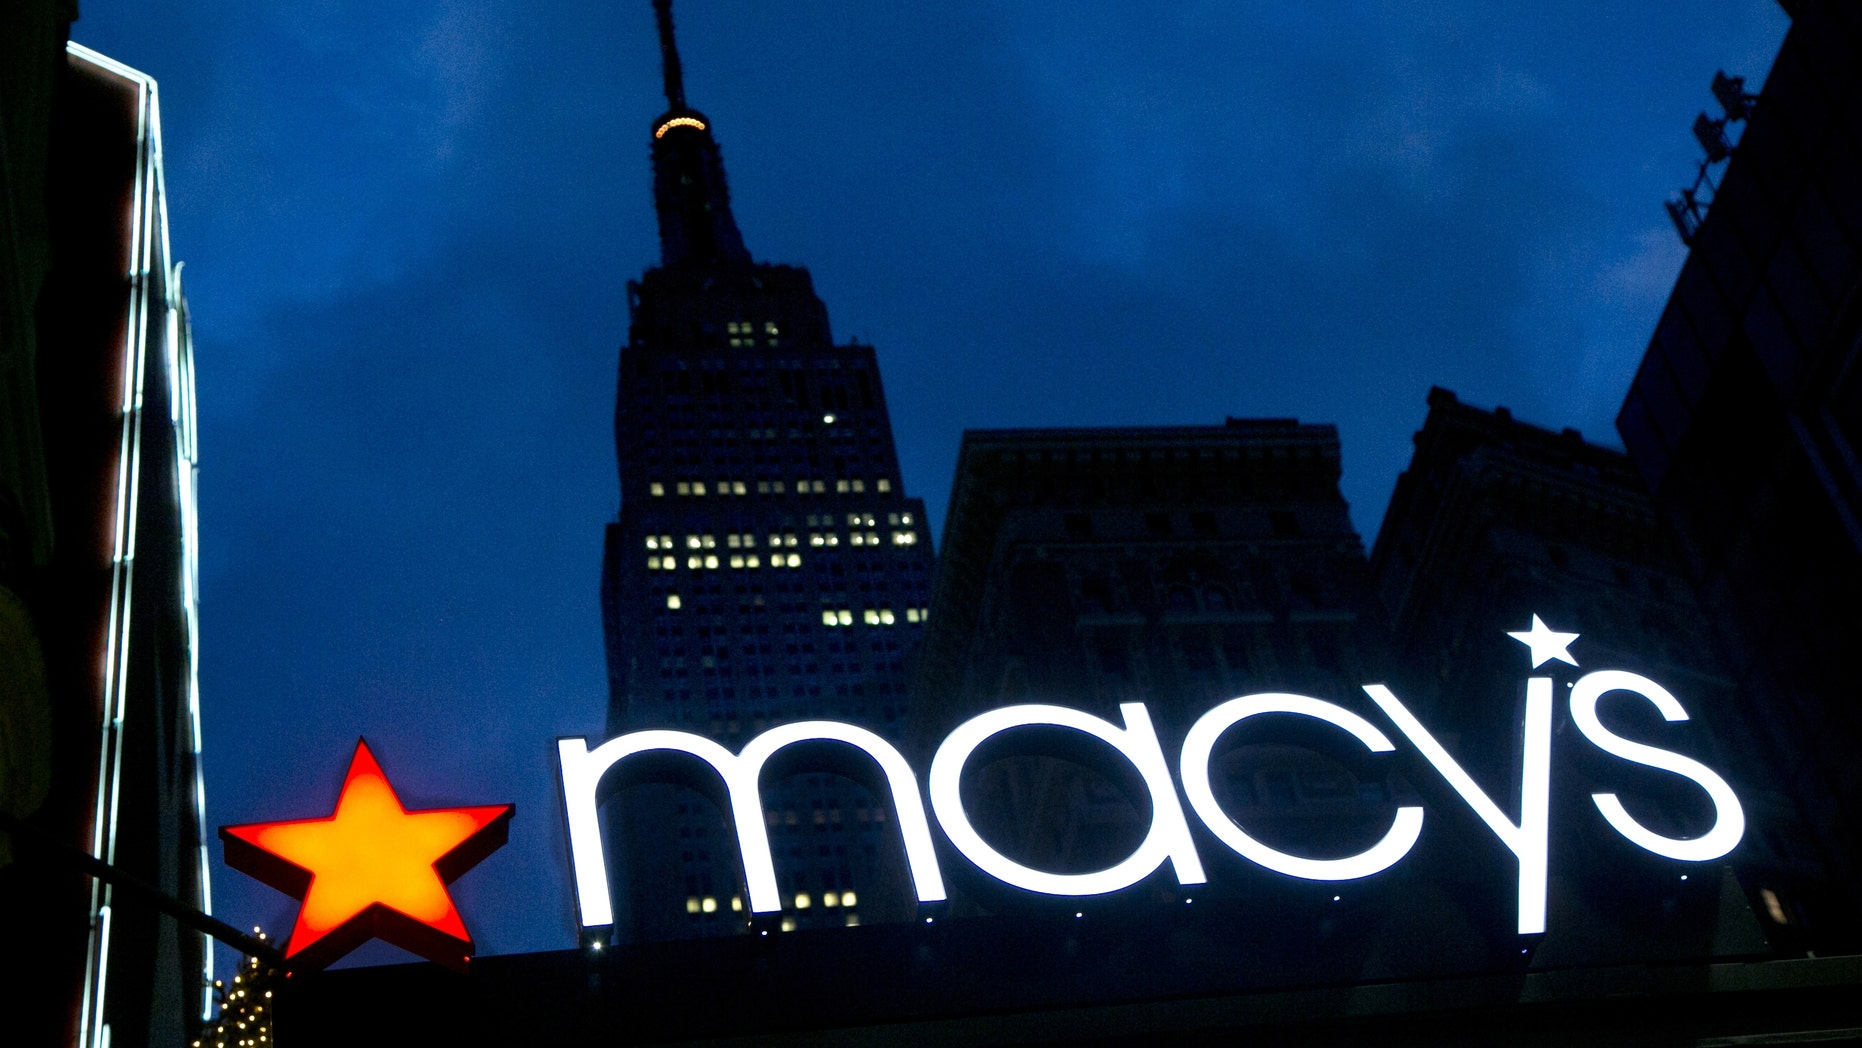 The Macy's logo is illuminated with the Empire State Building in the background